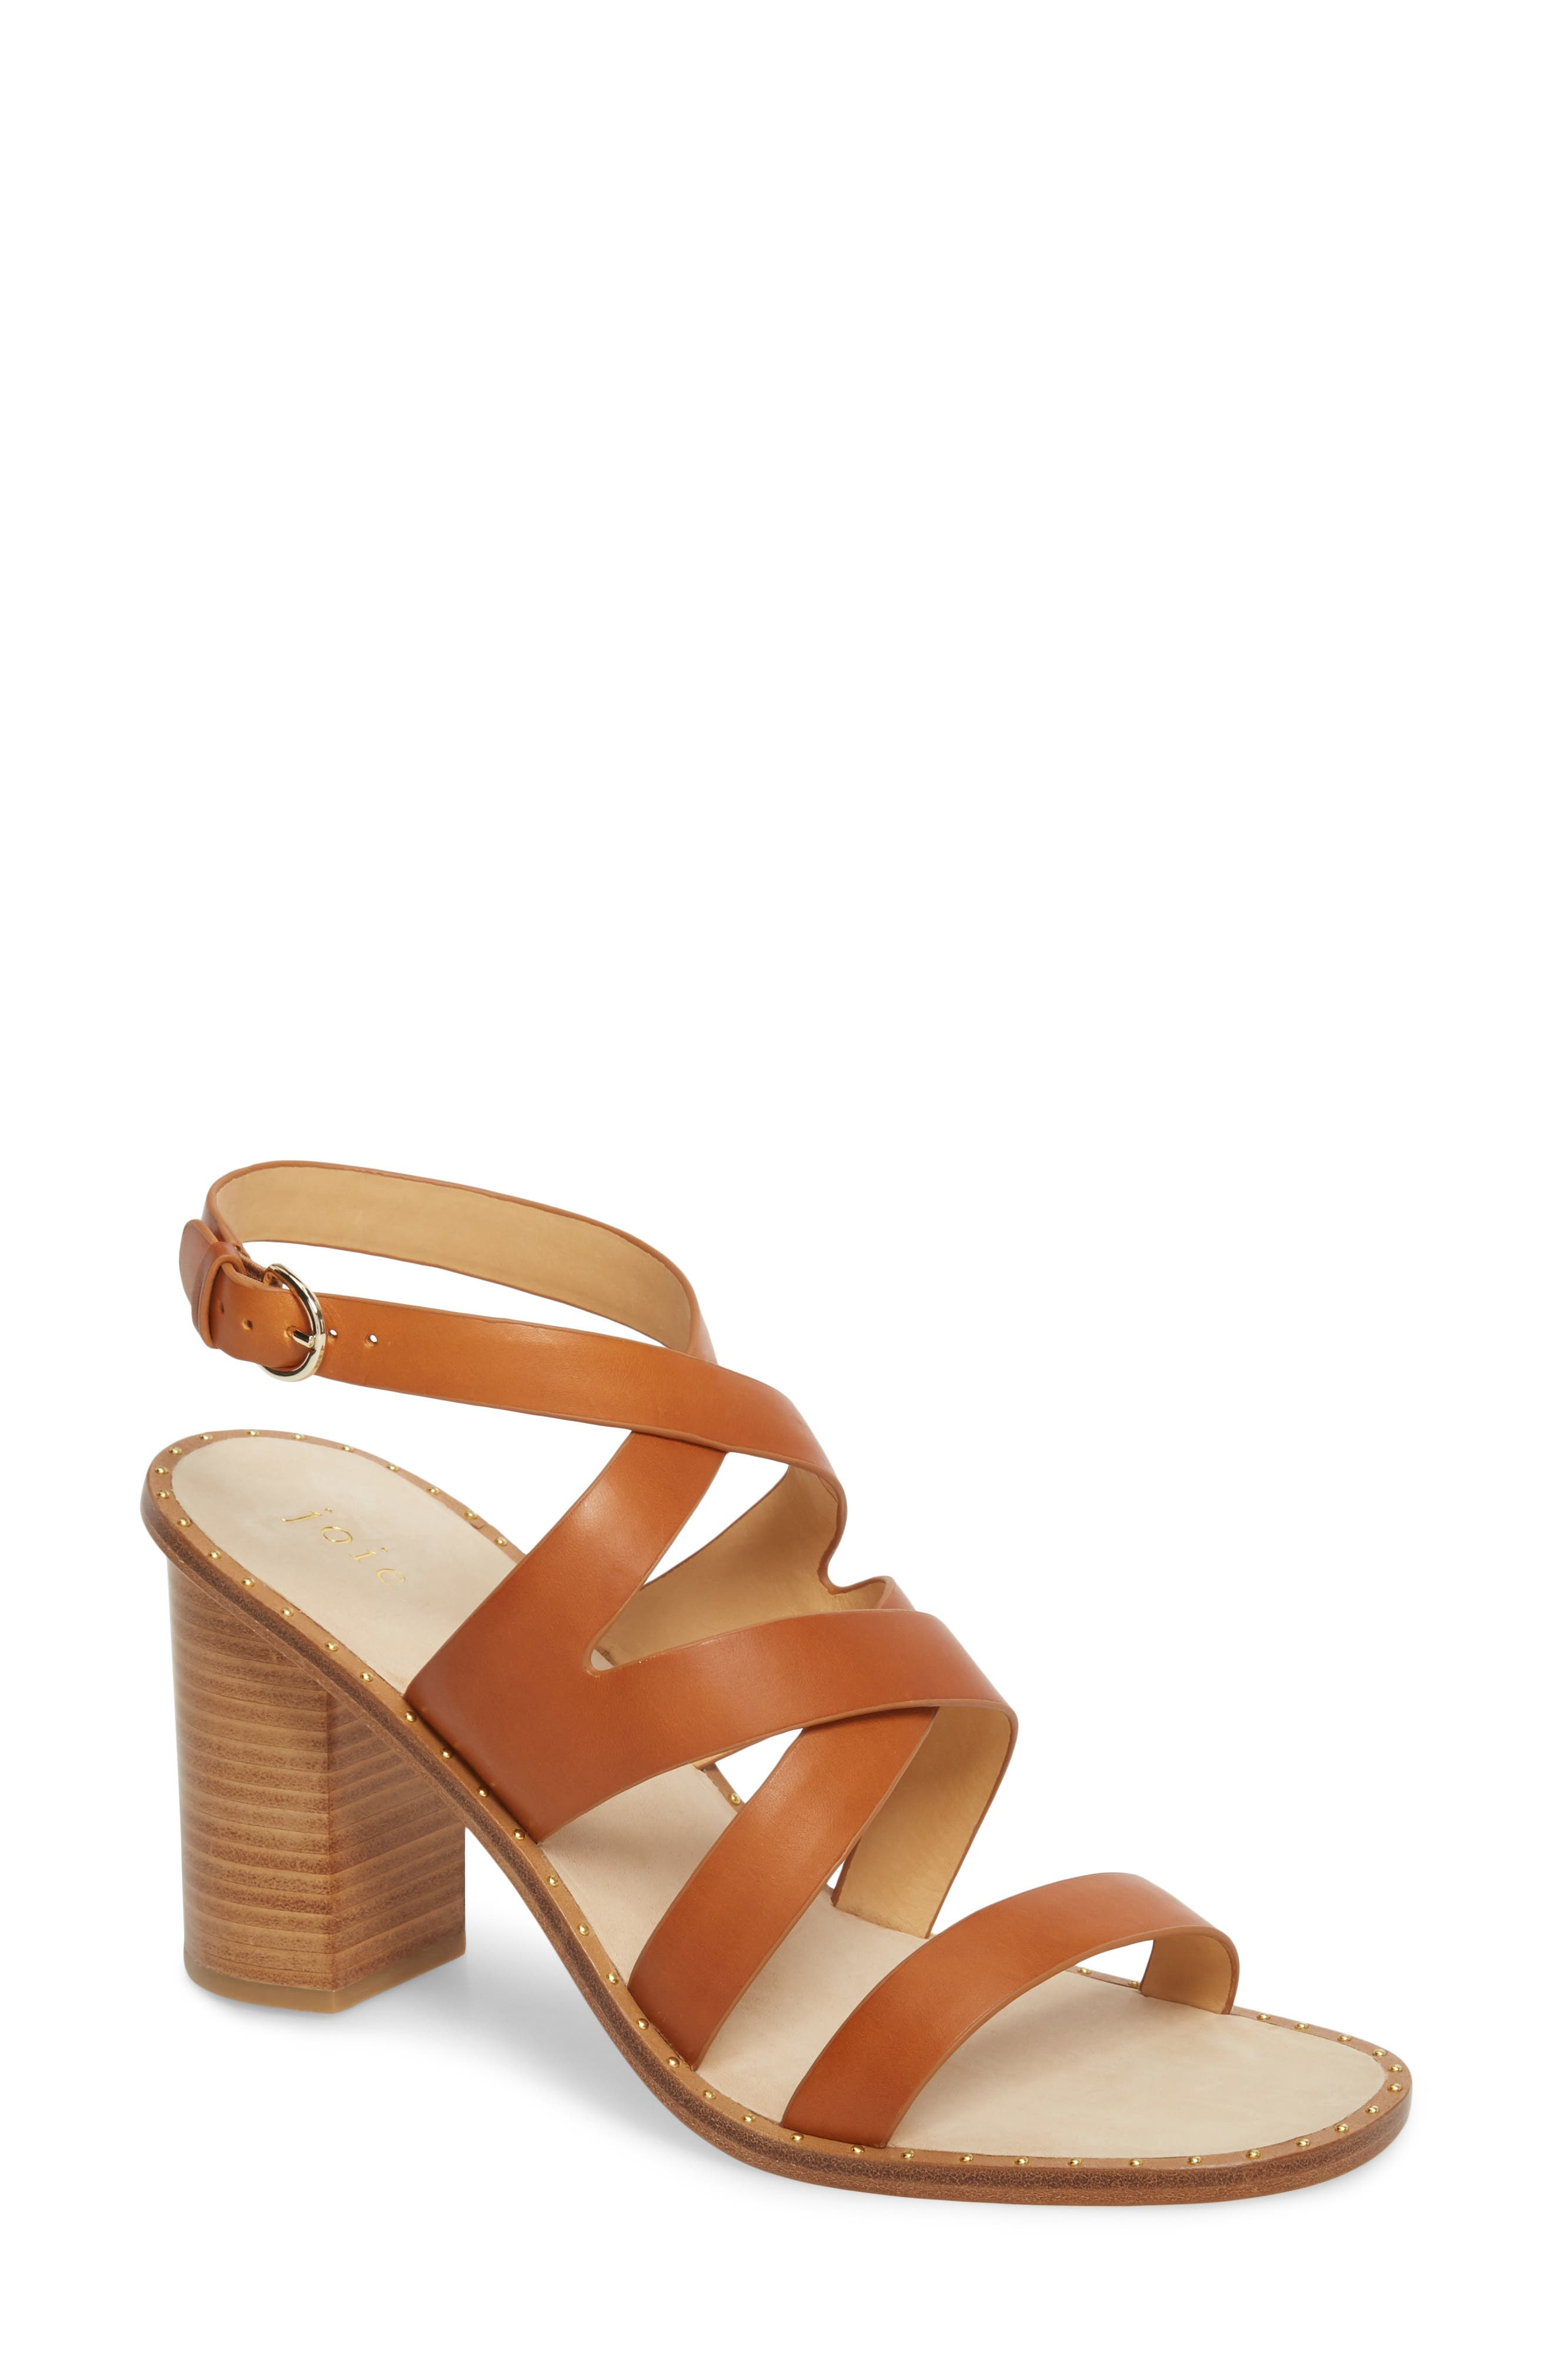 Onfer Studded Strappy Sandal,                             Main thumbnail 1, color,                             Tan